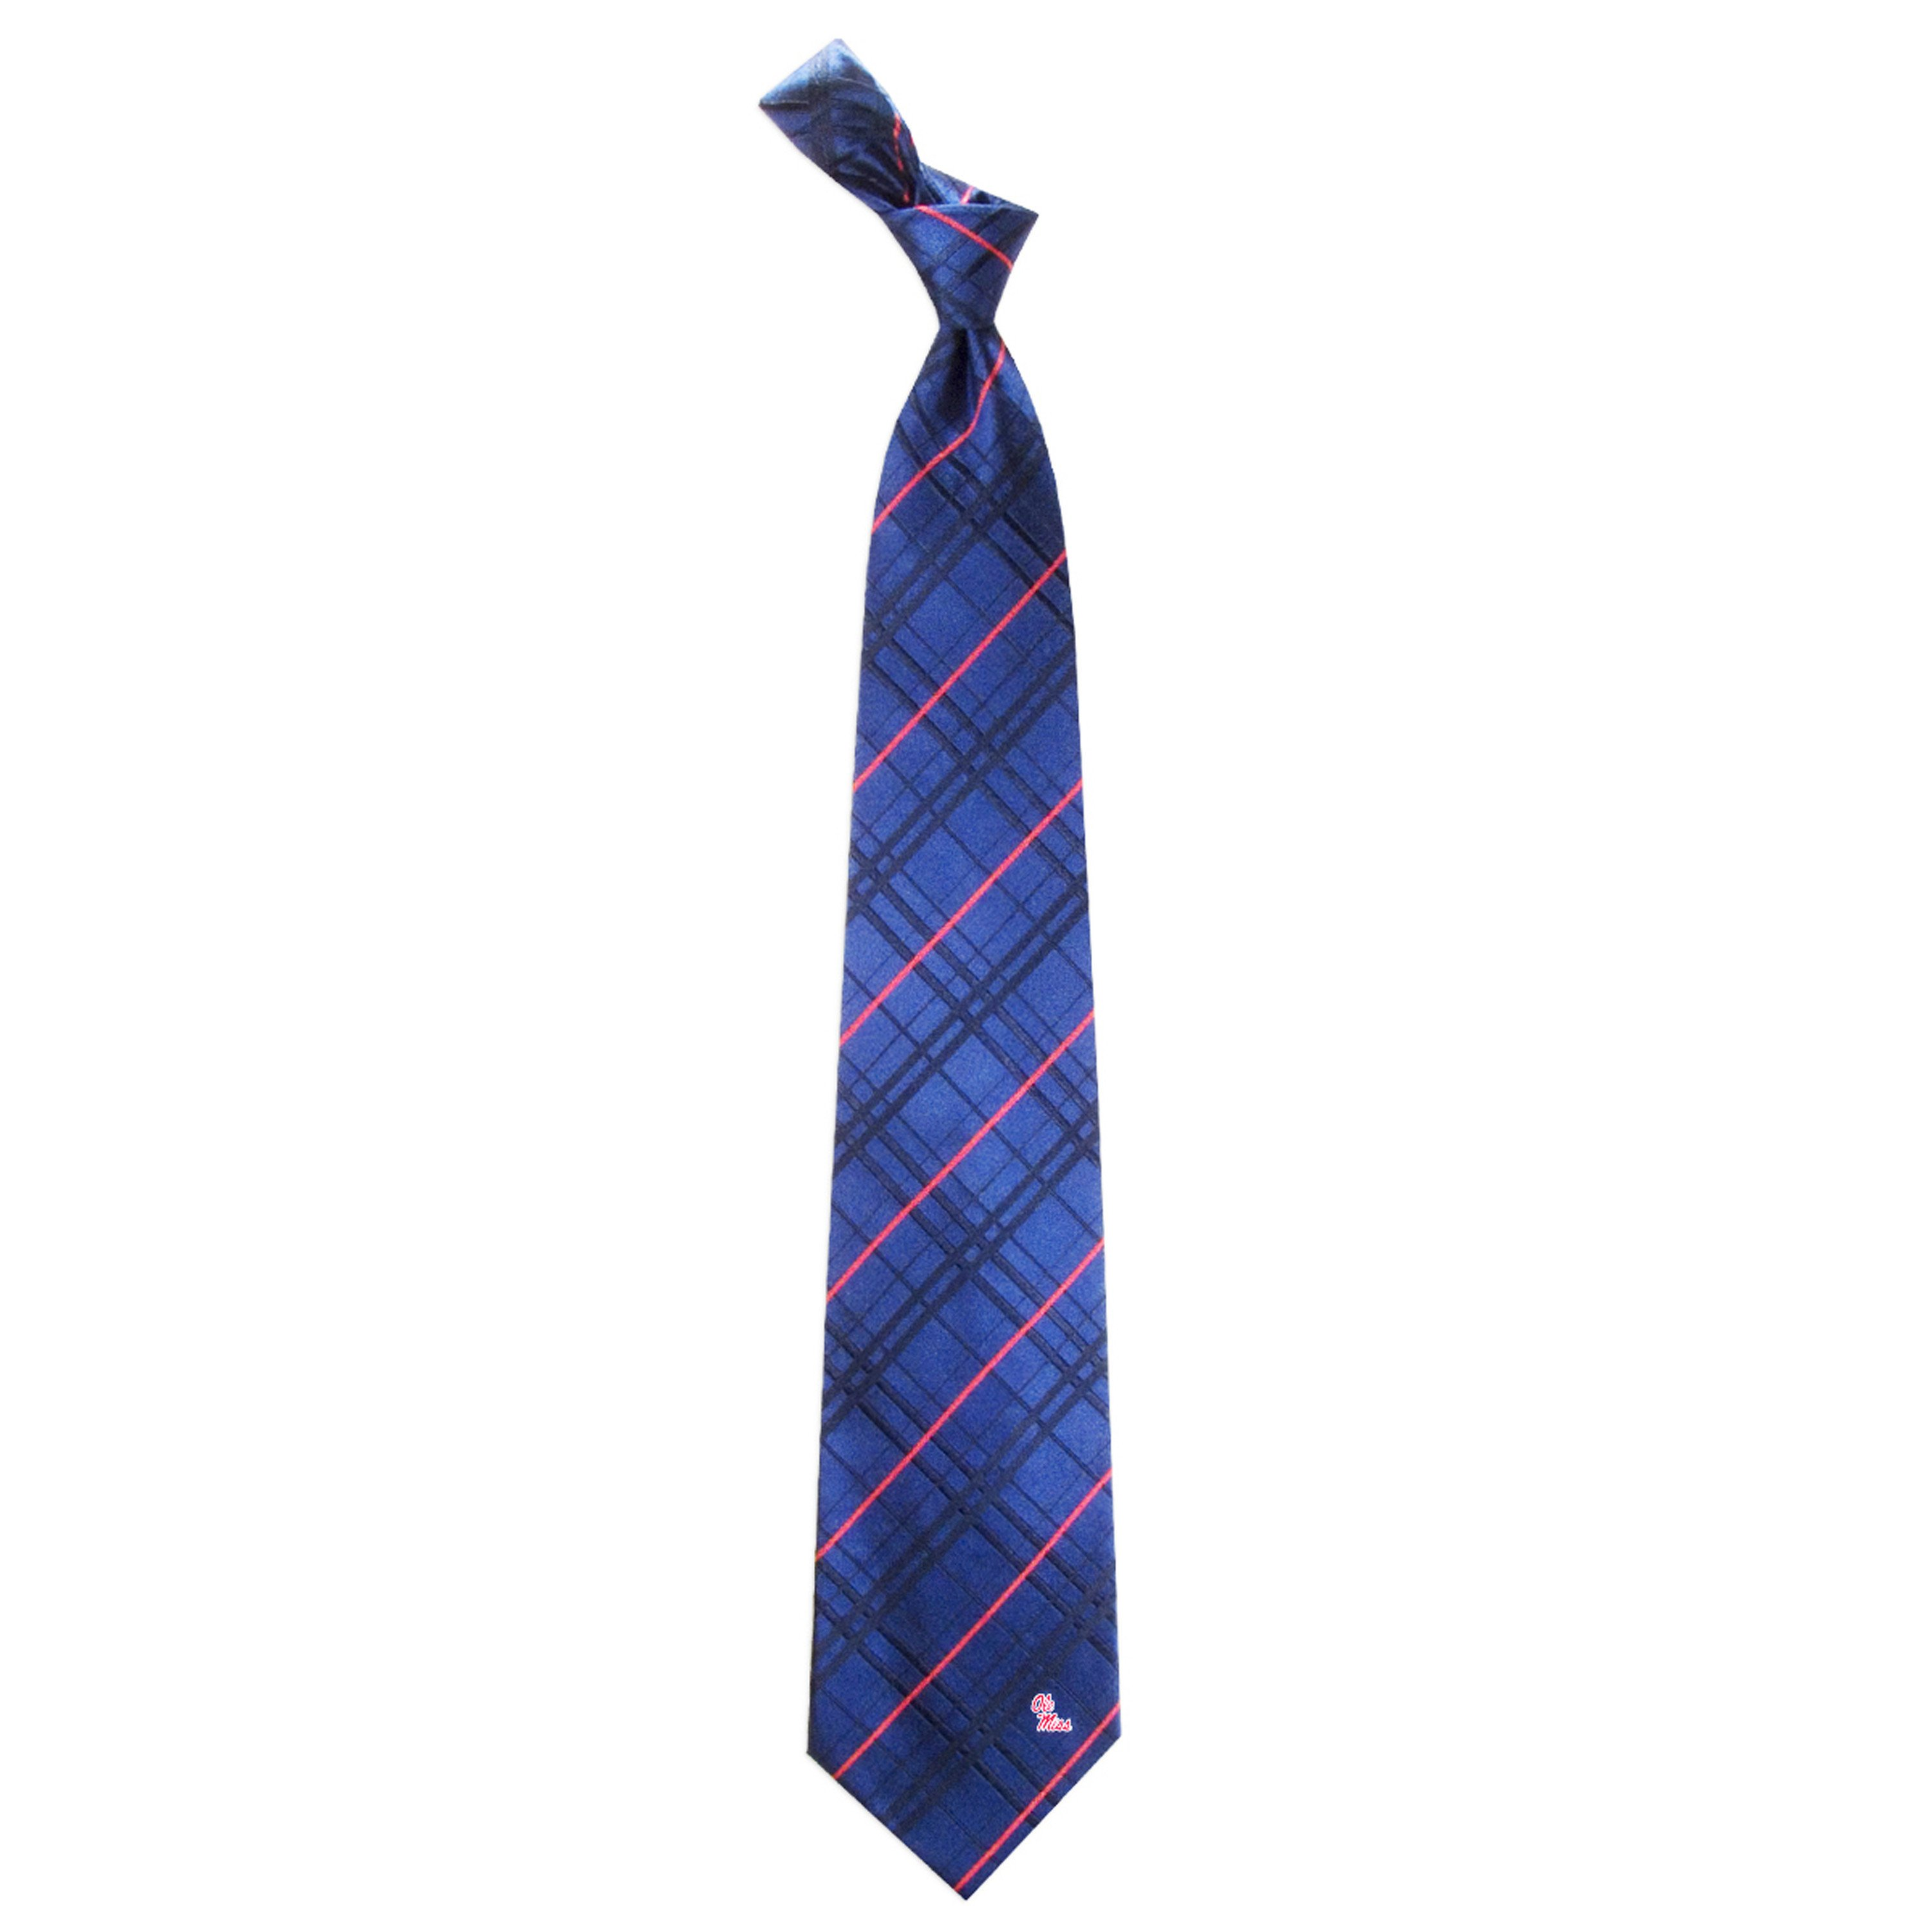 Ole Miss Tie - Oxford Woven